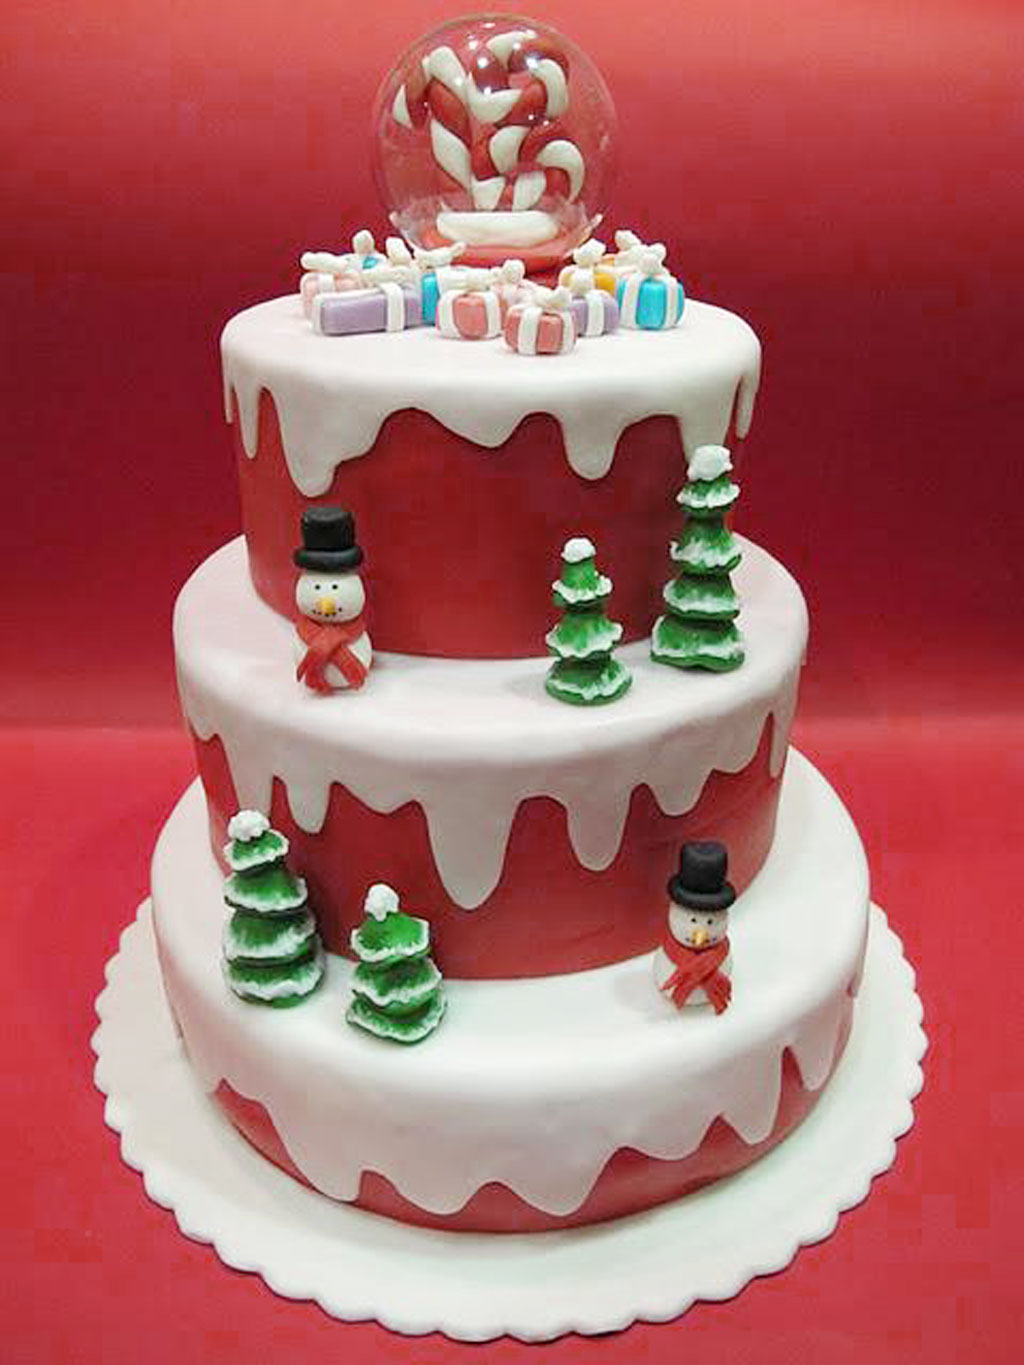 Christmas Birthday Cakes For Children Birthday Cake Cake